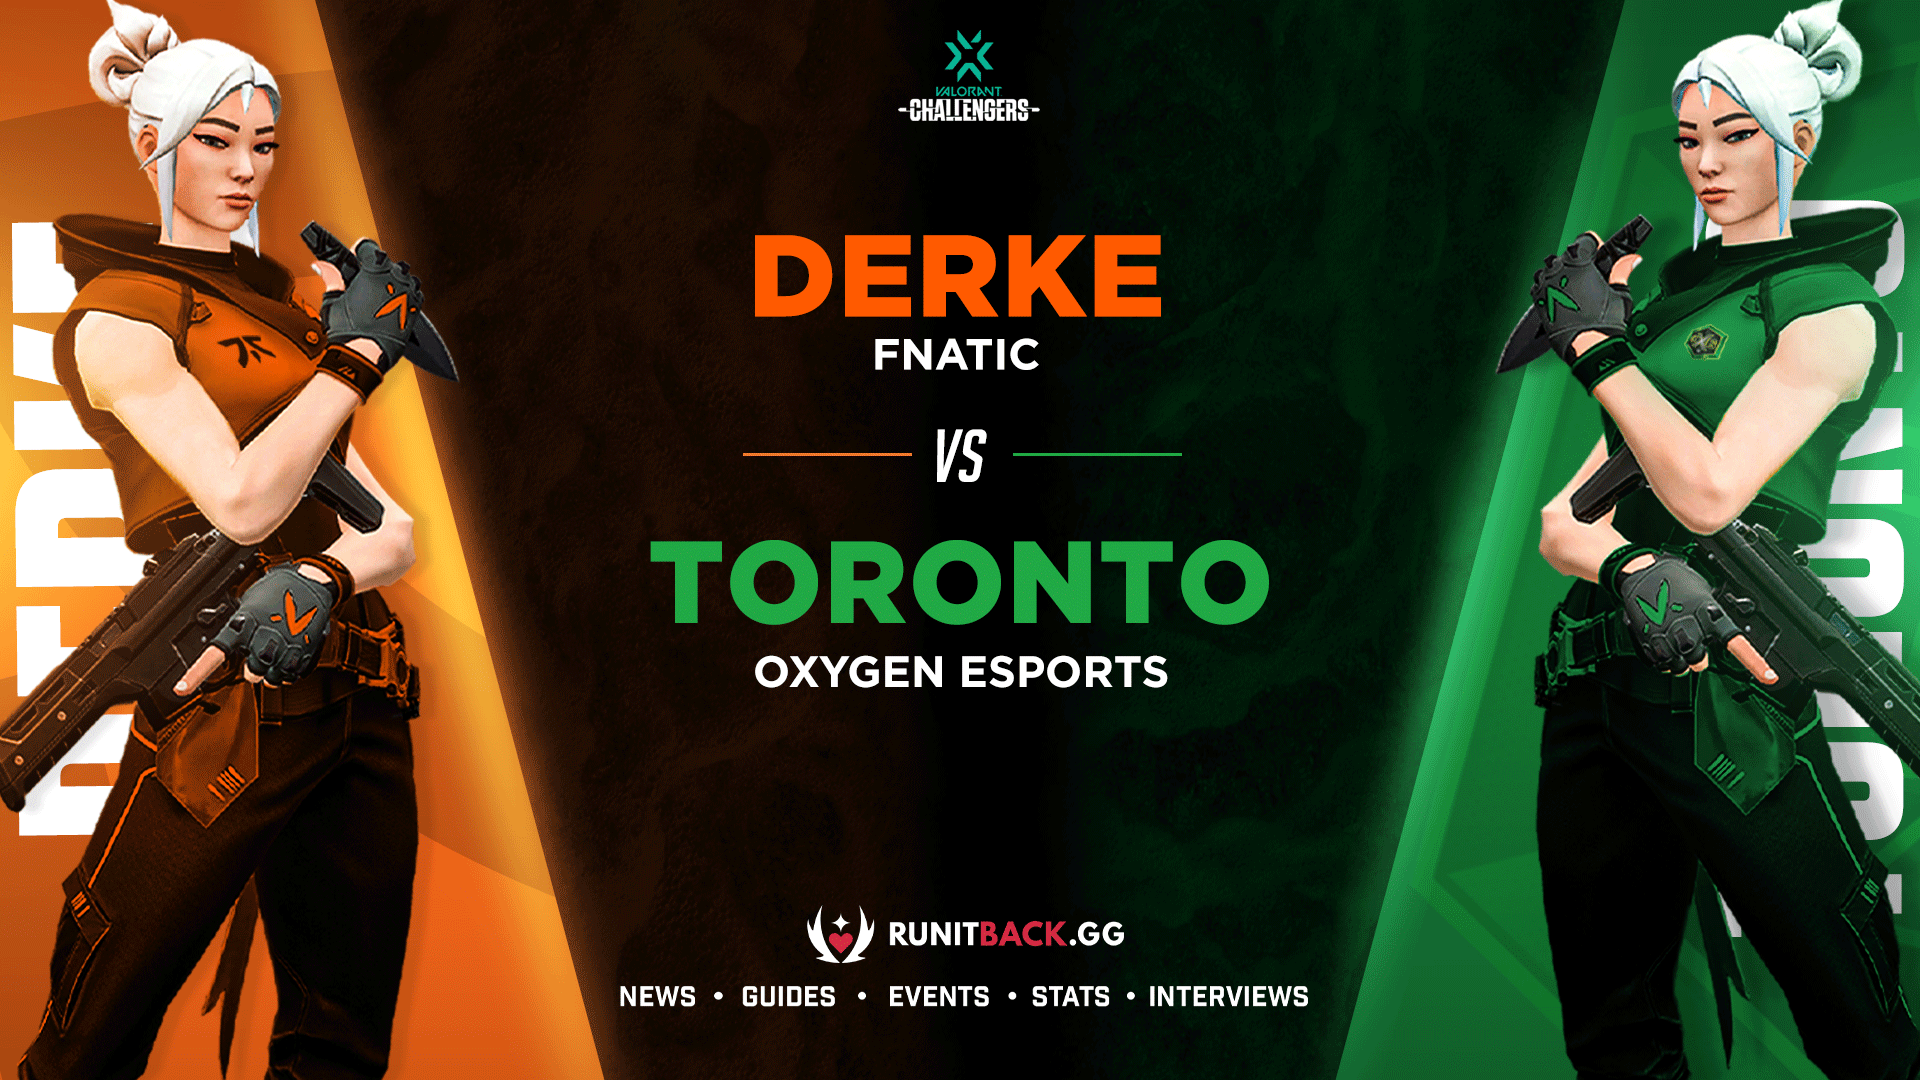 How does a Jett on the Vandal compare to a Jett on the Operator? Fnatic Derke vs Oxygen Toronto